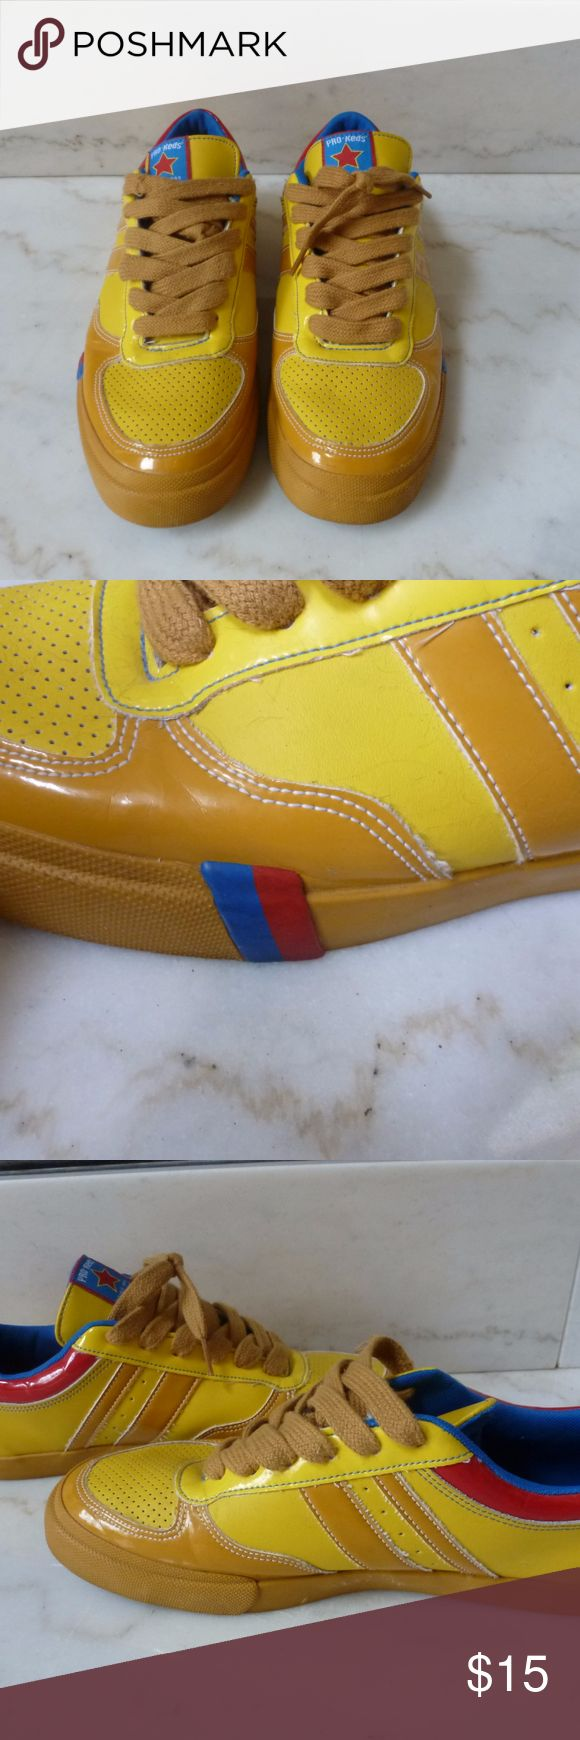 Men's wild yellow Pro Keds An instant attention getter, these Pro Keds are done in bright yellow with dark yellow, blue, and red accents.  In excellent condition.  Men's size 9.5 Pro Keds Shoes Sneakers